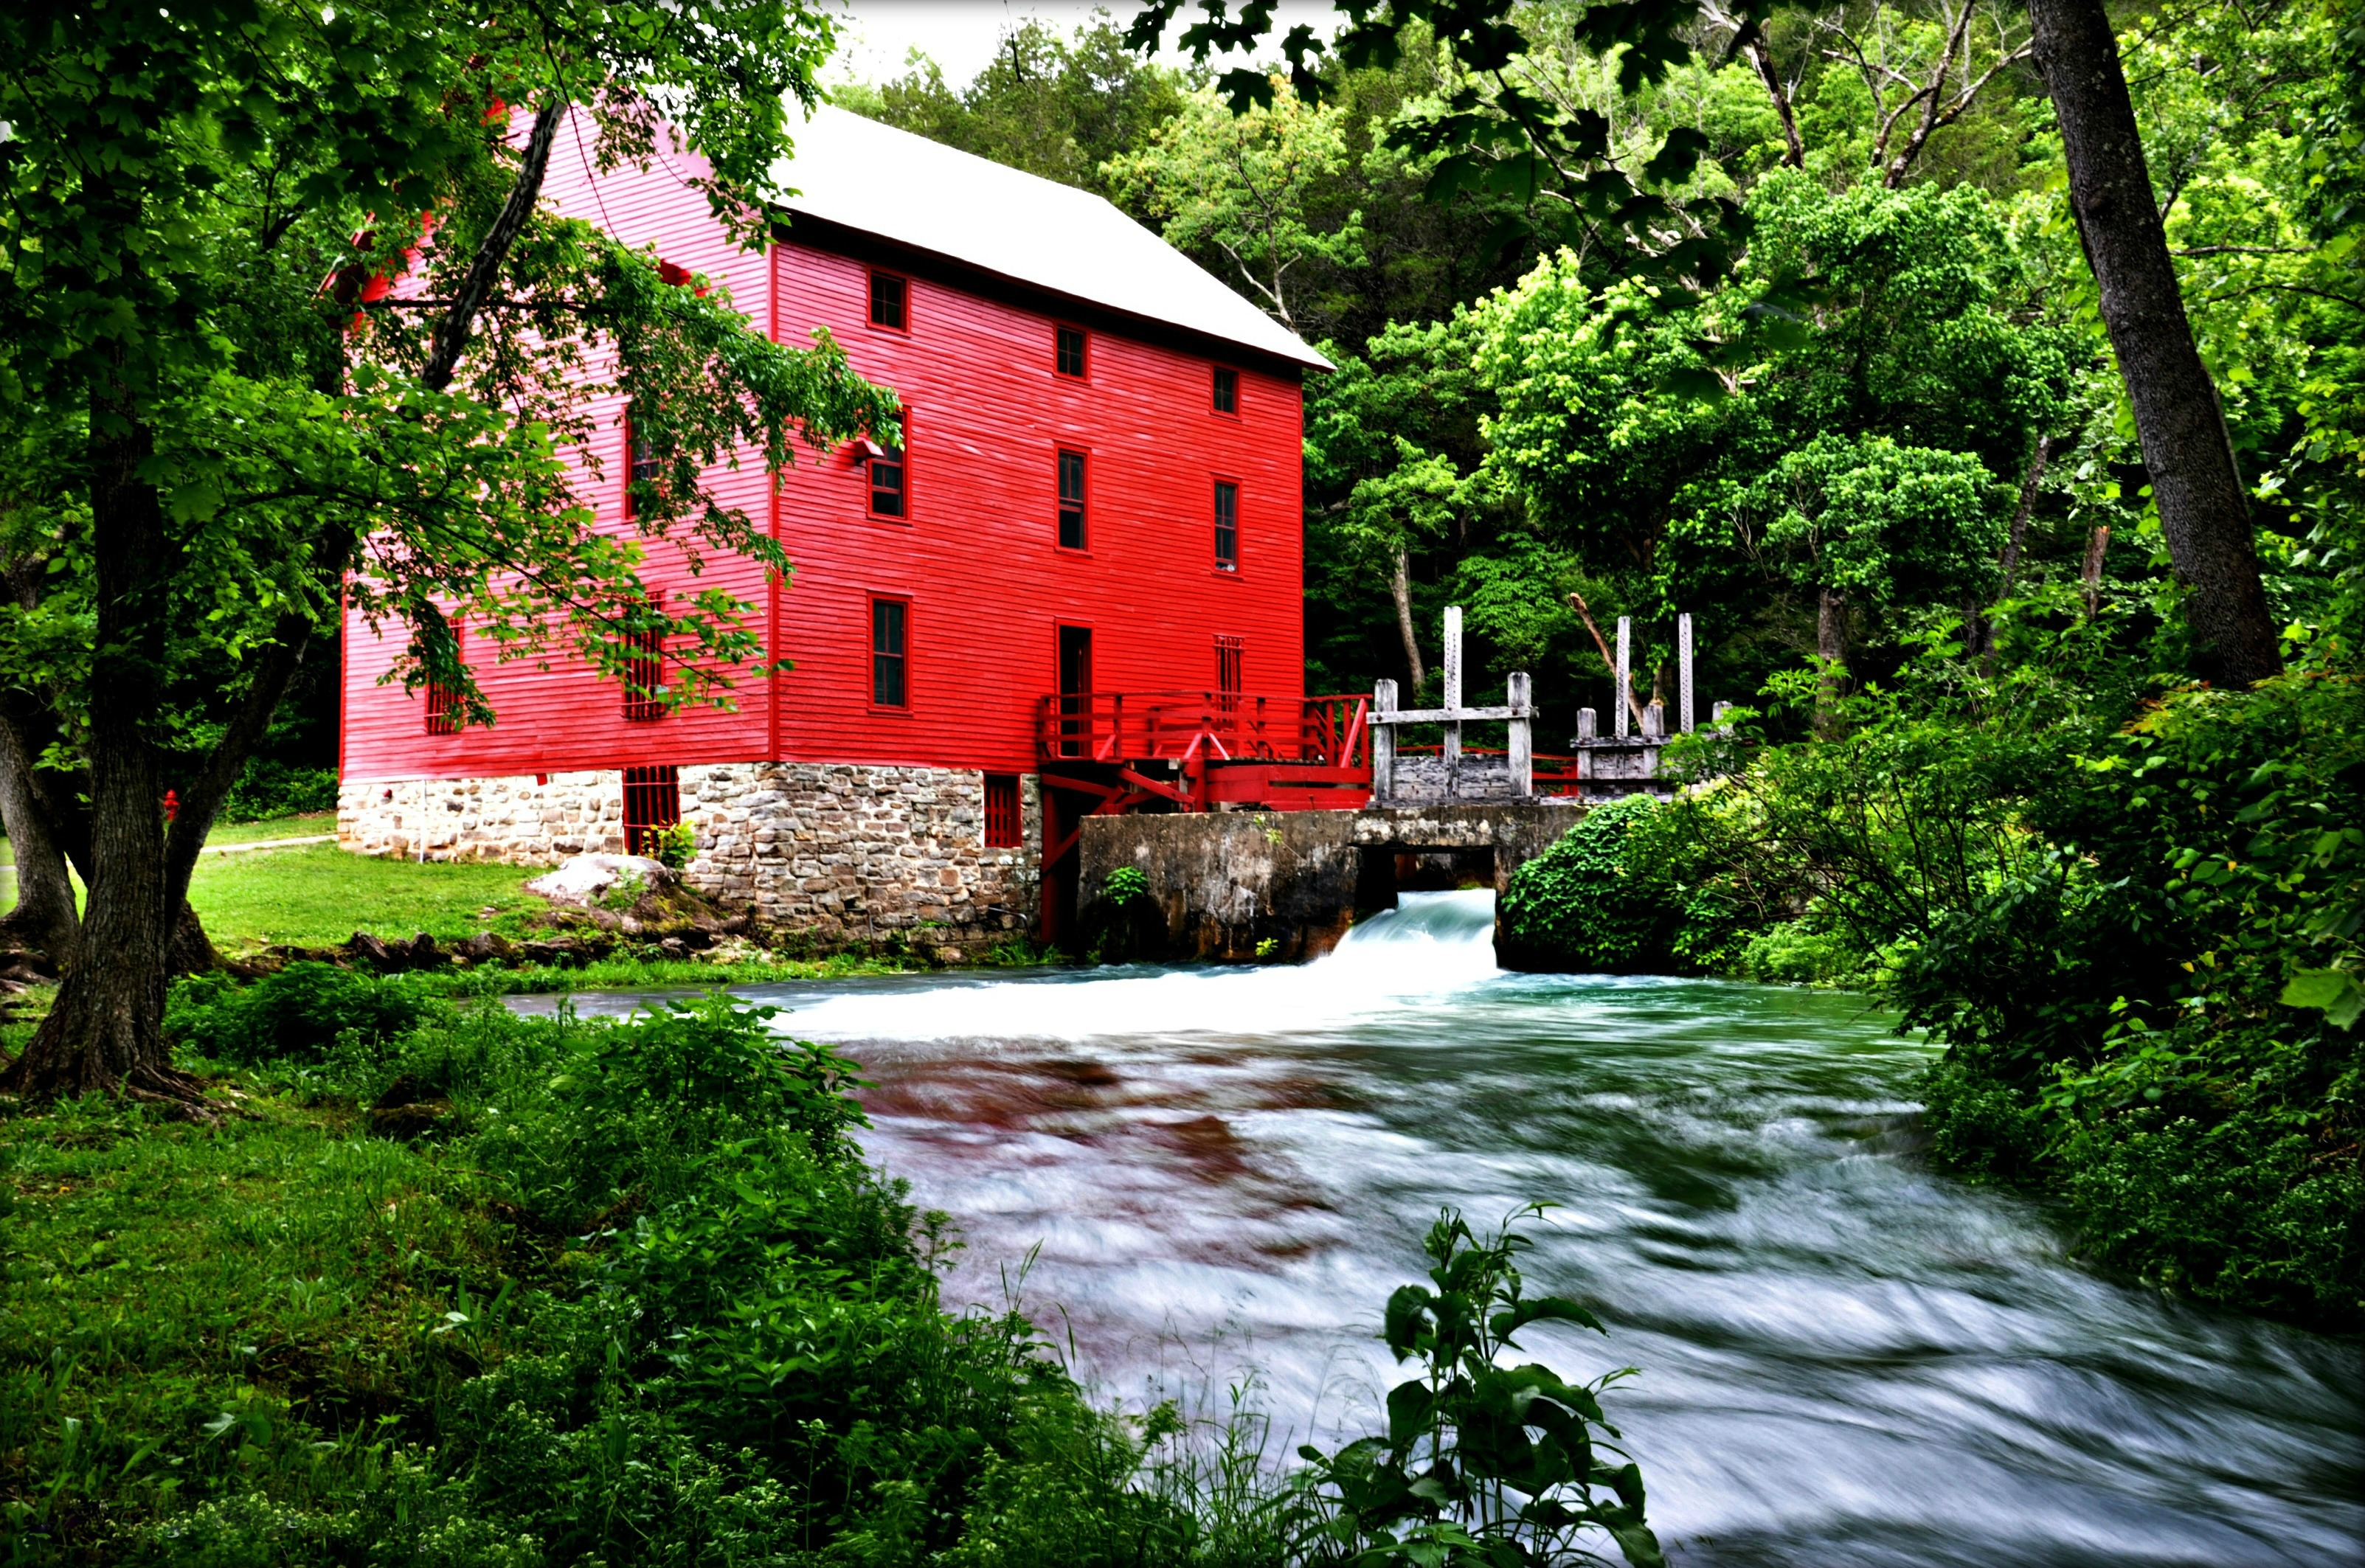 Alley Mill by Patty Wheatley-Bishop/copyright